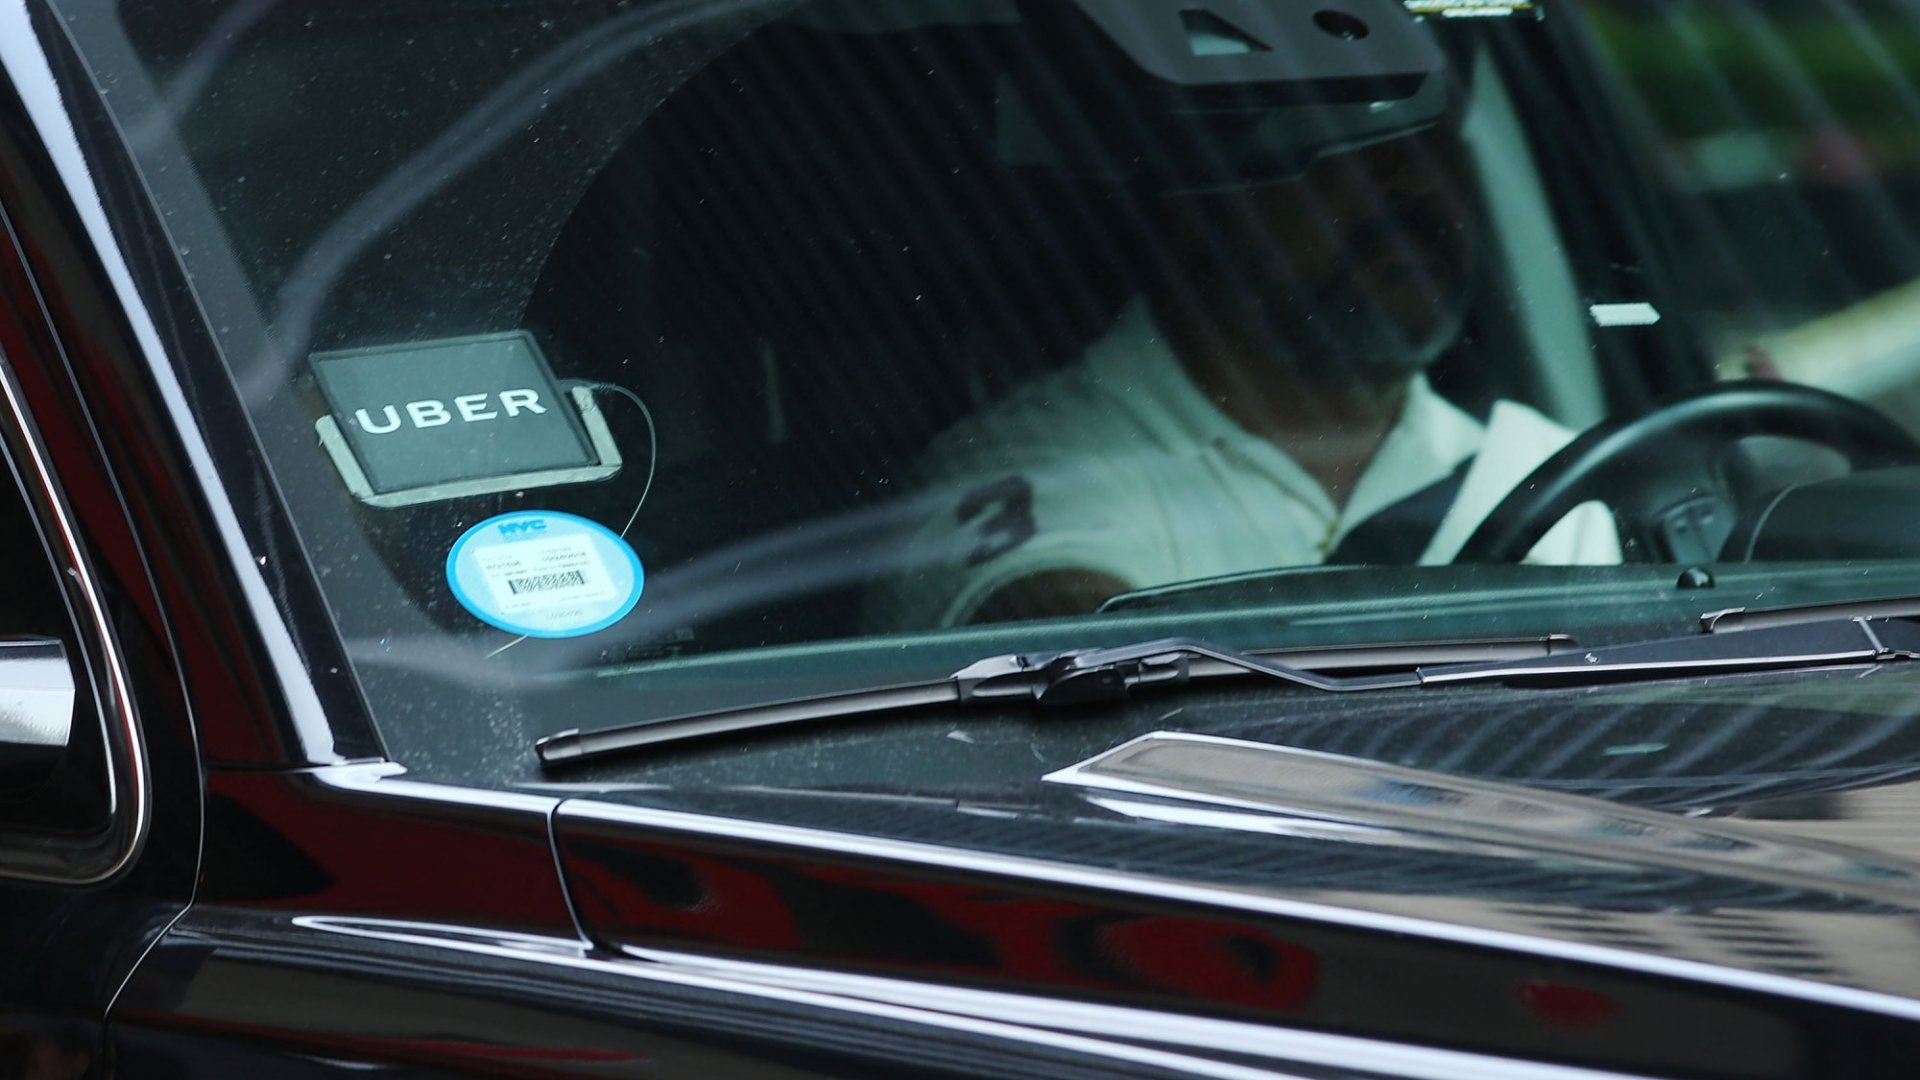 Uber to Shut Down Its U.S. Car Leasing Business, Employees Fear Layoffs